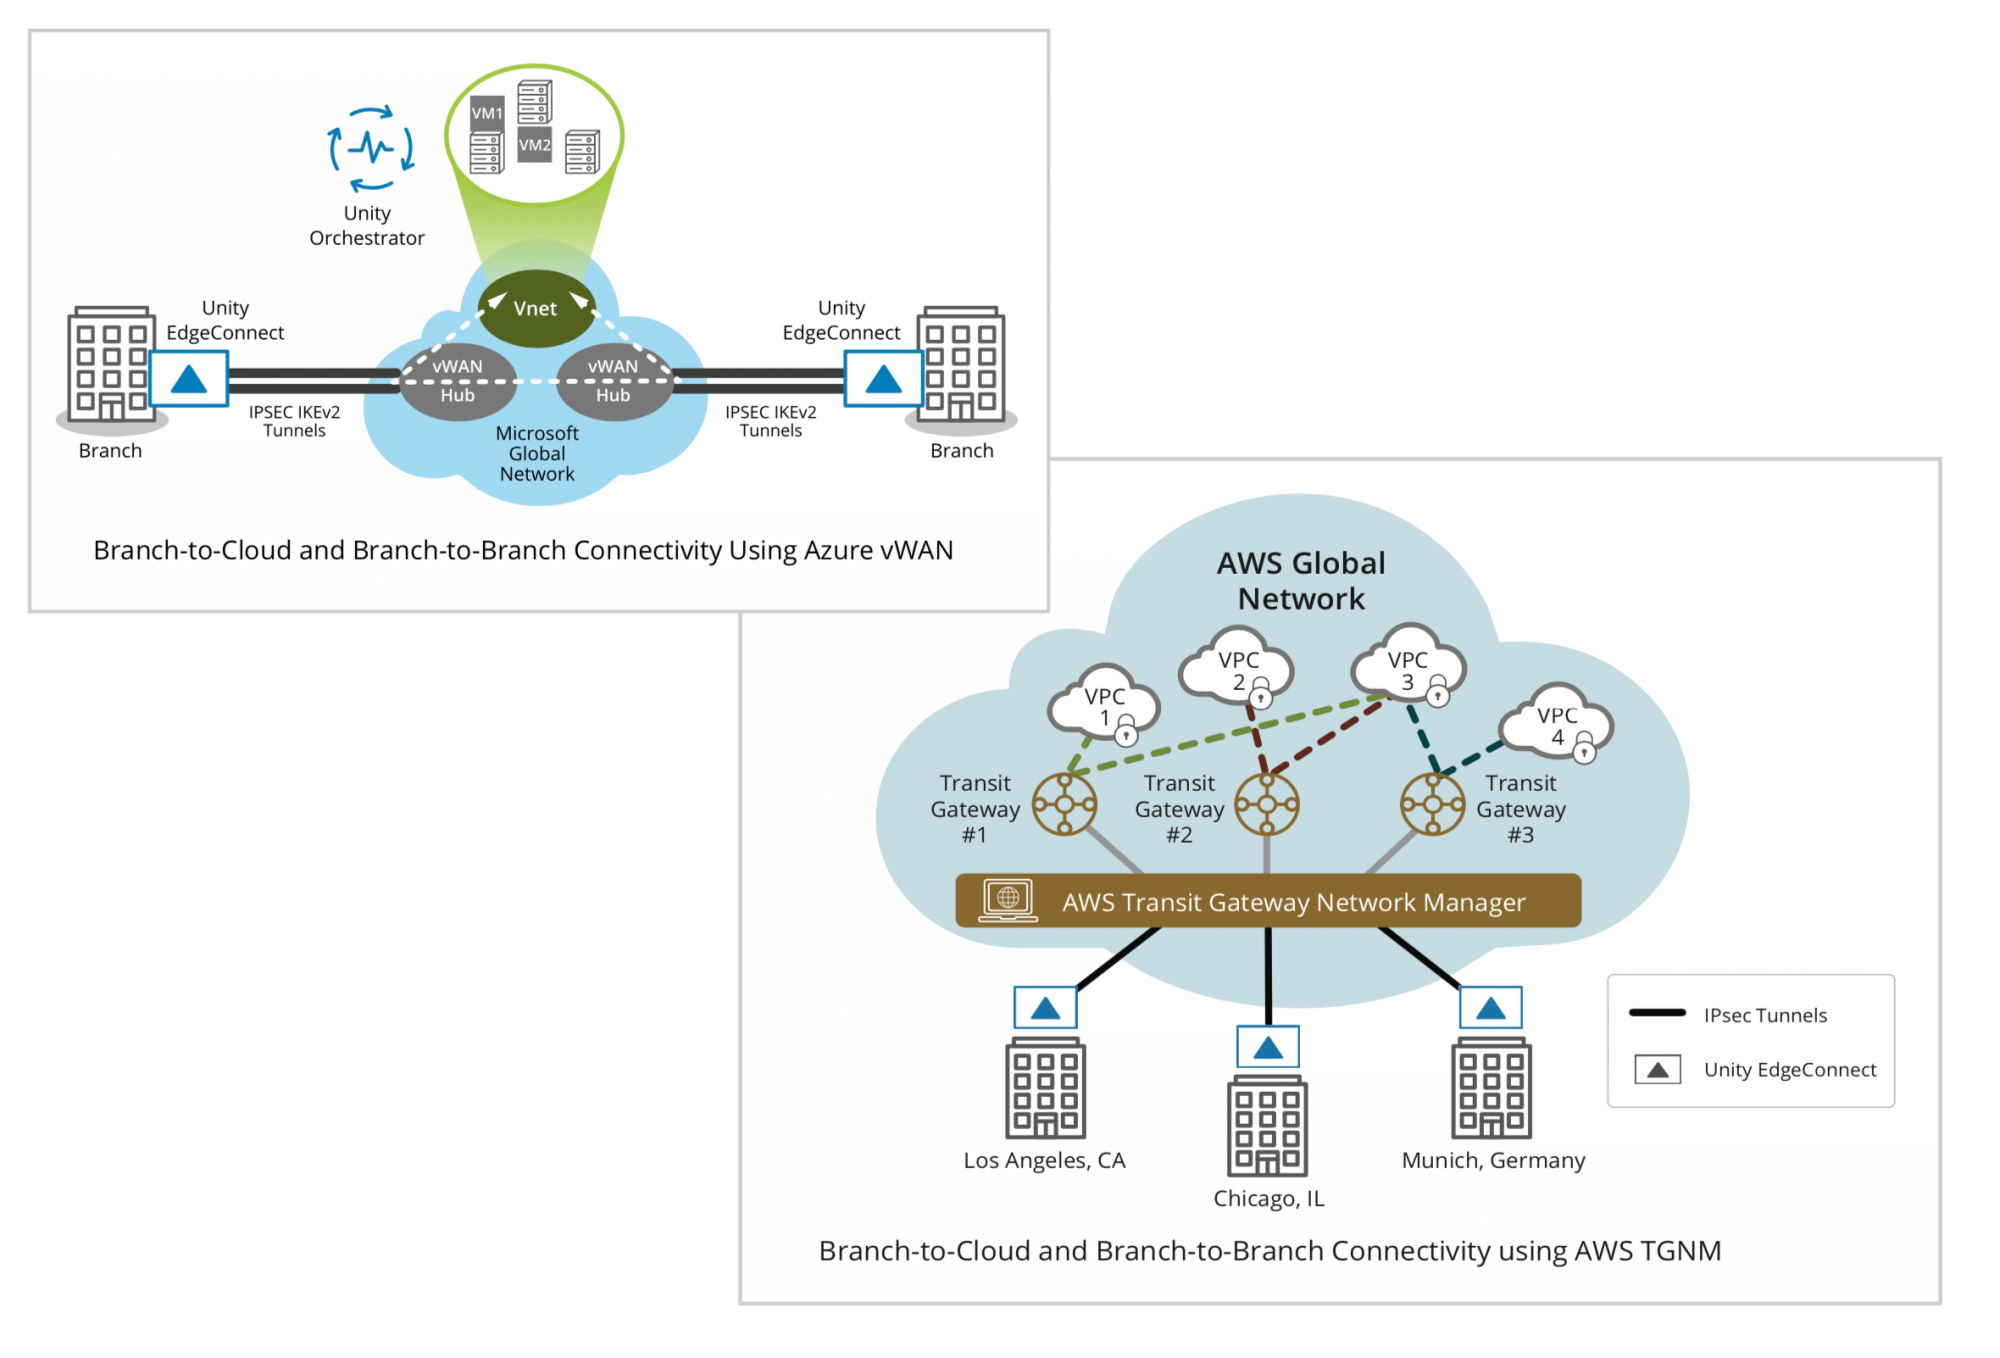 Branch-to-Cloud and Branch-to-Branch Connectivity using AWS TGNM